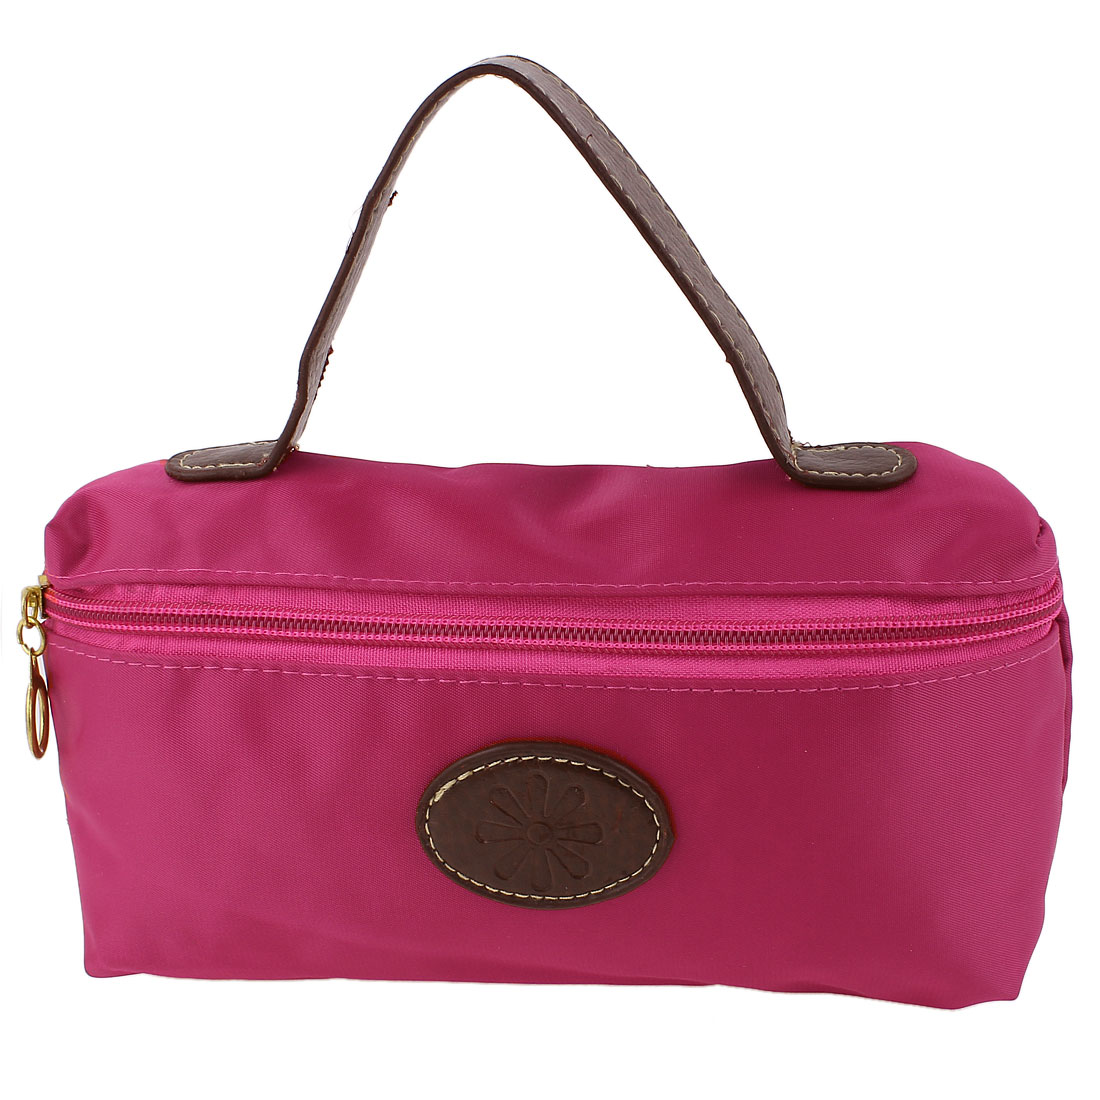 Lady Money Cell Phone Makeup Holder Hand Strap Cosmetic Bag Pouch Fuchsia